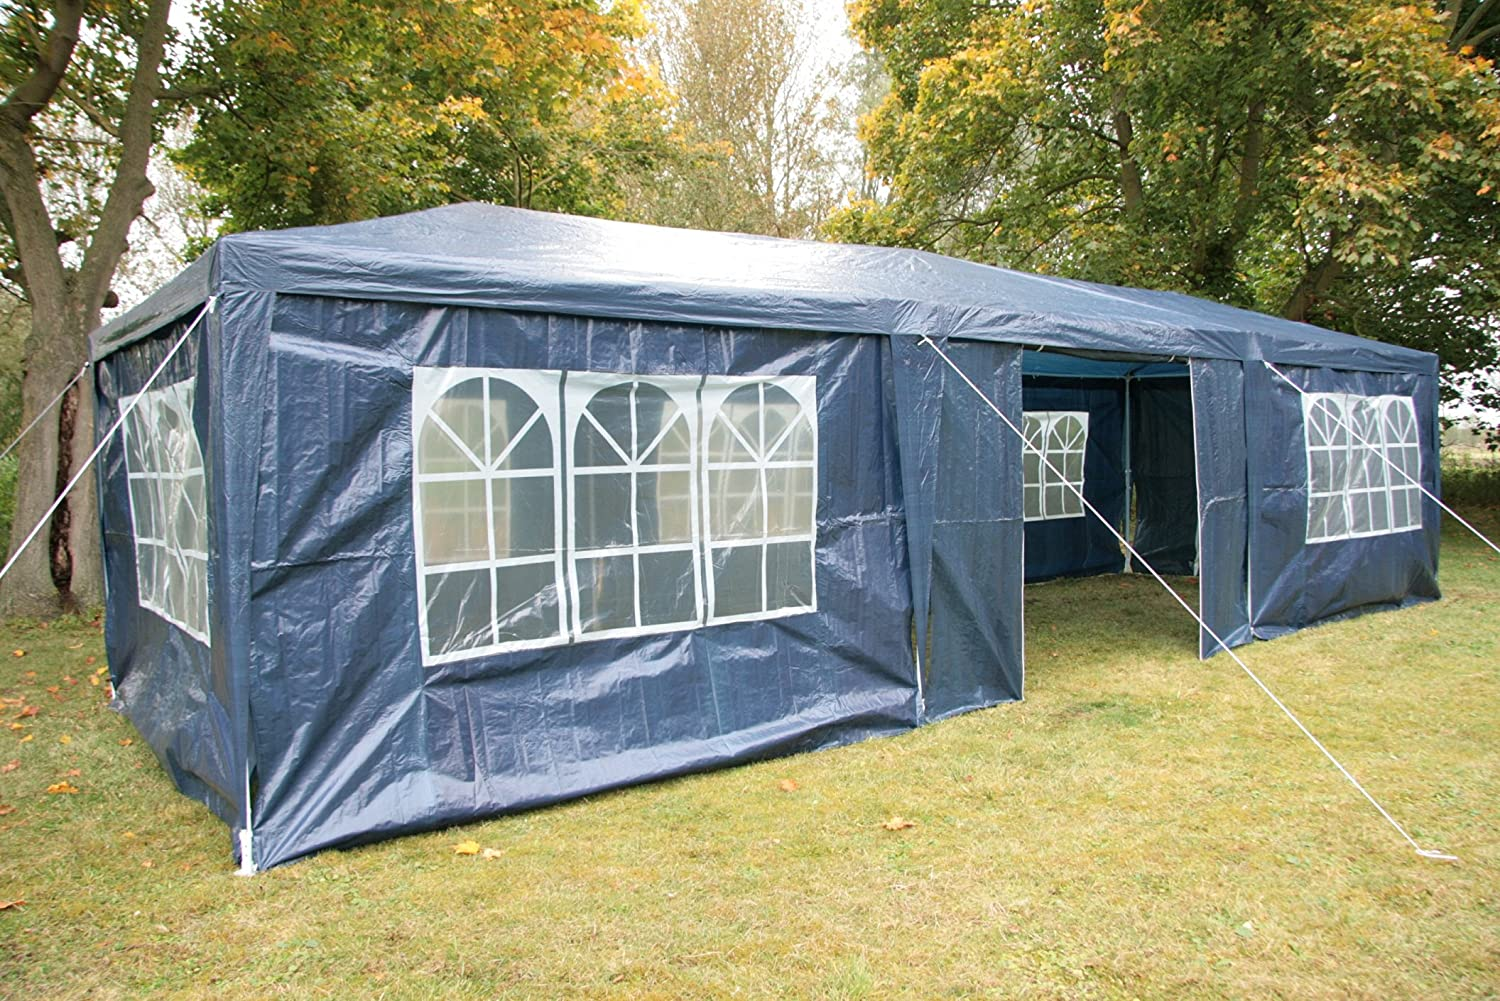 Airwave 3 x 9m Party Tent Gazebo Marquee with 3 x Unique WindBars and Side Panels 120g Waterproof Canopy Blue 120g Amazon.co.uk Garden u0026 Outdoors & Airwave 3 x 9m Party Tent Gazebo Marquee with 3 x Unique WindBars ...